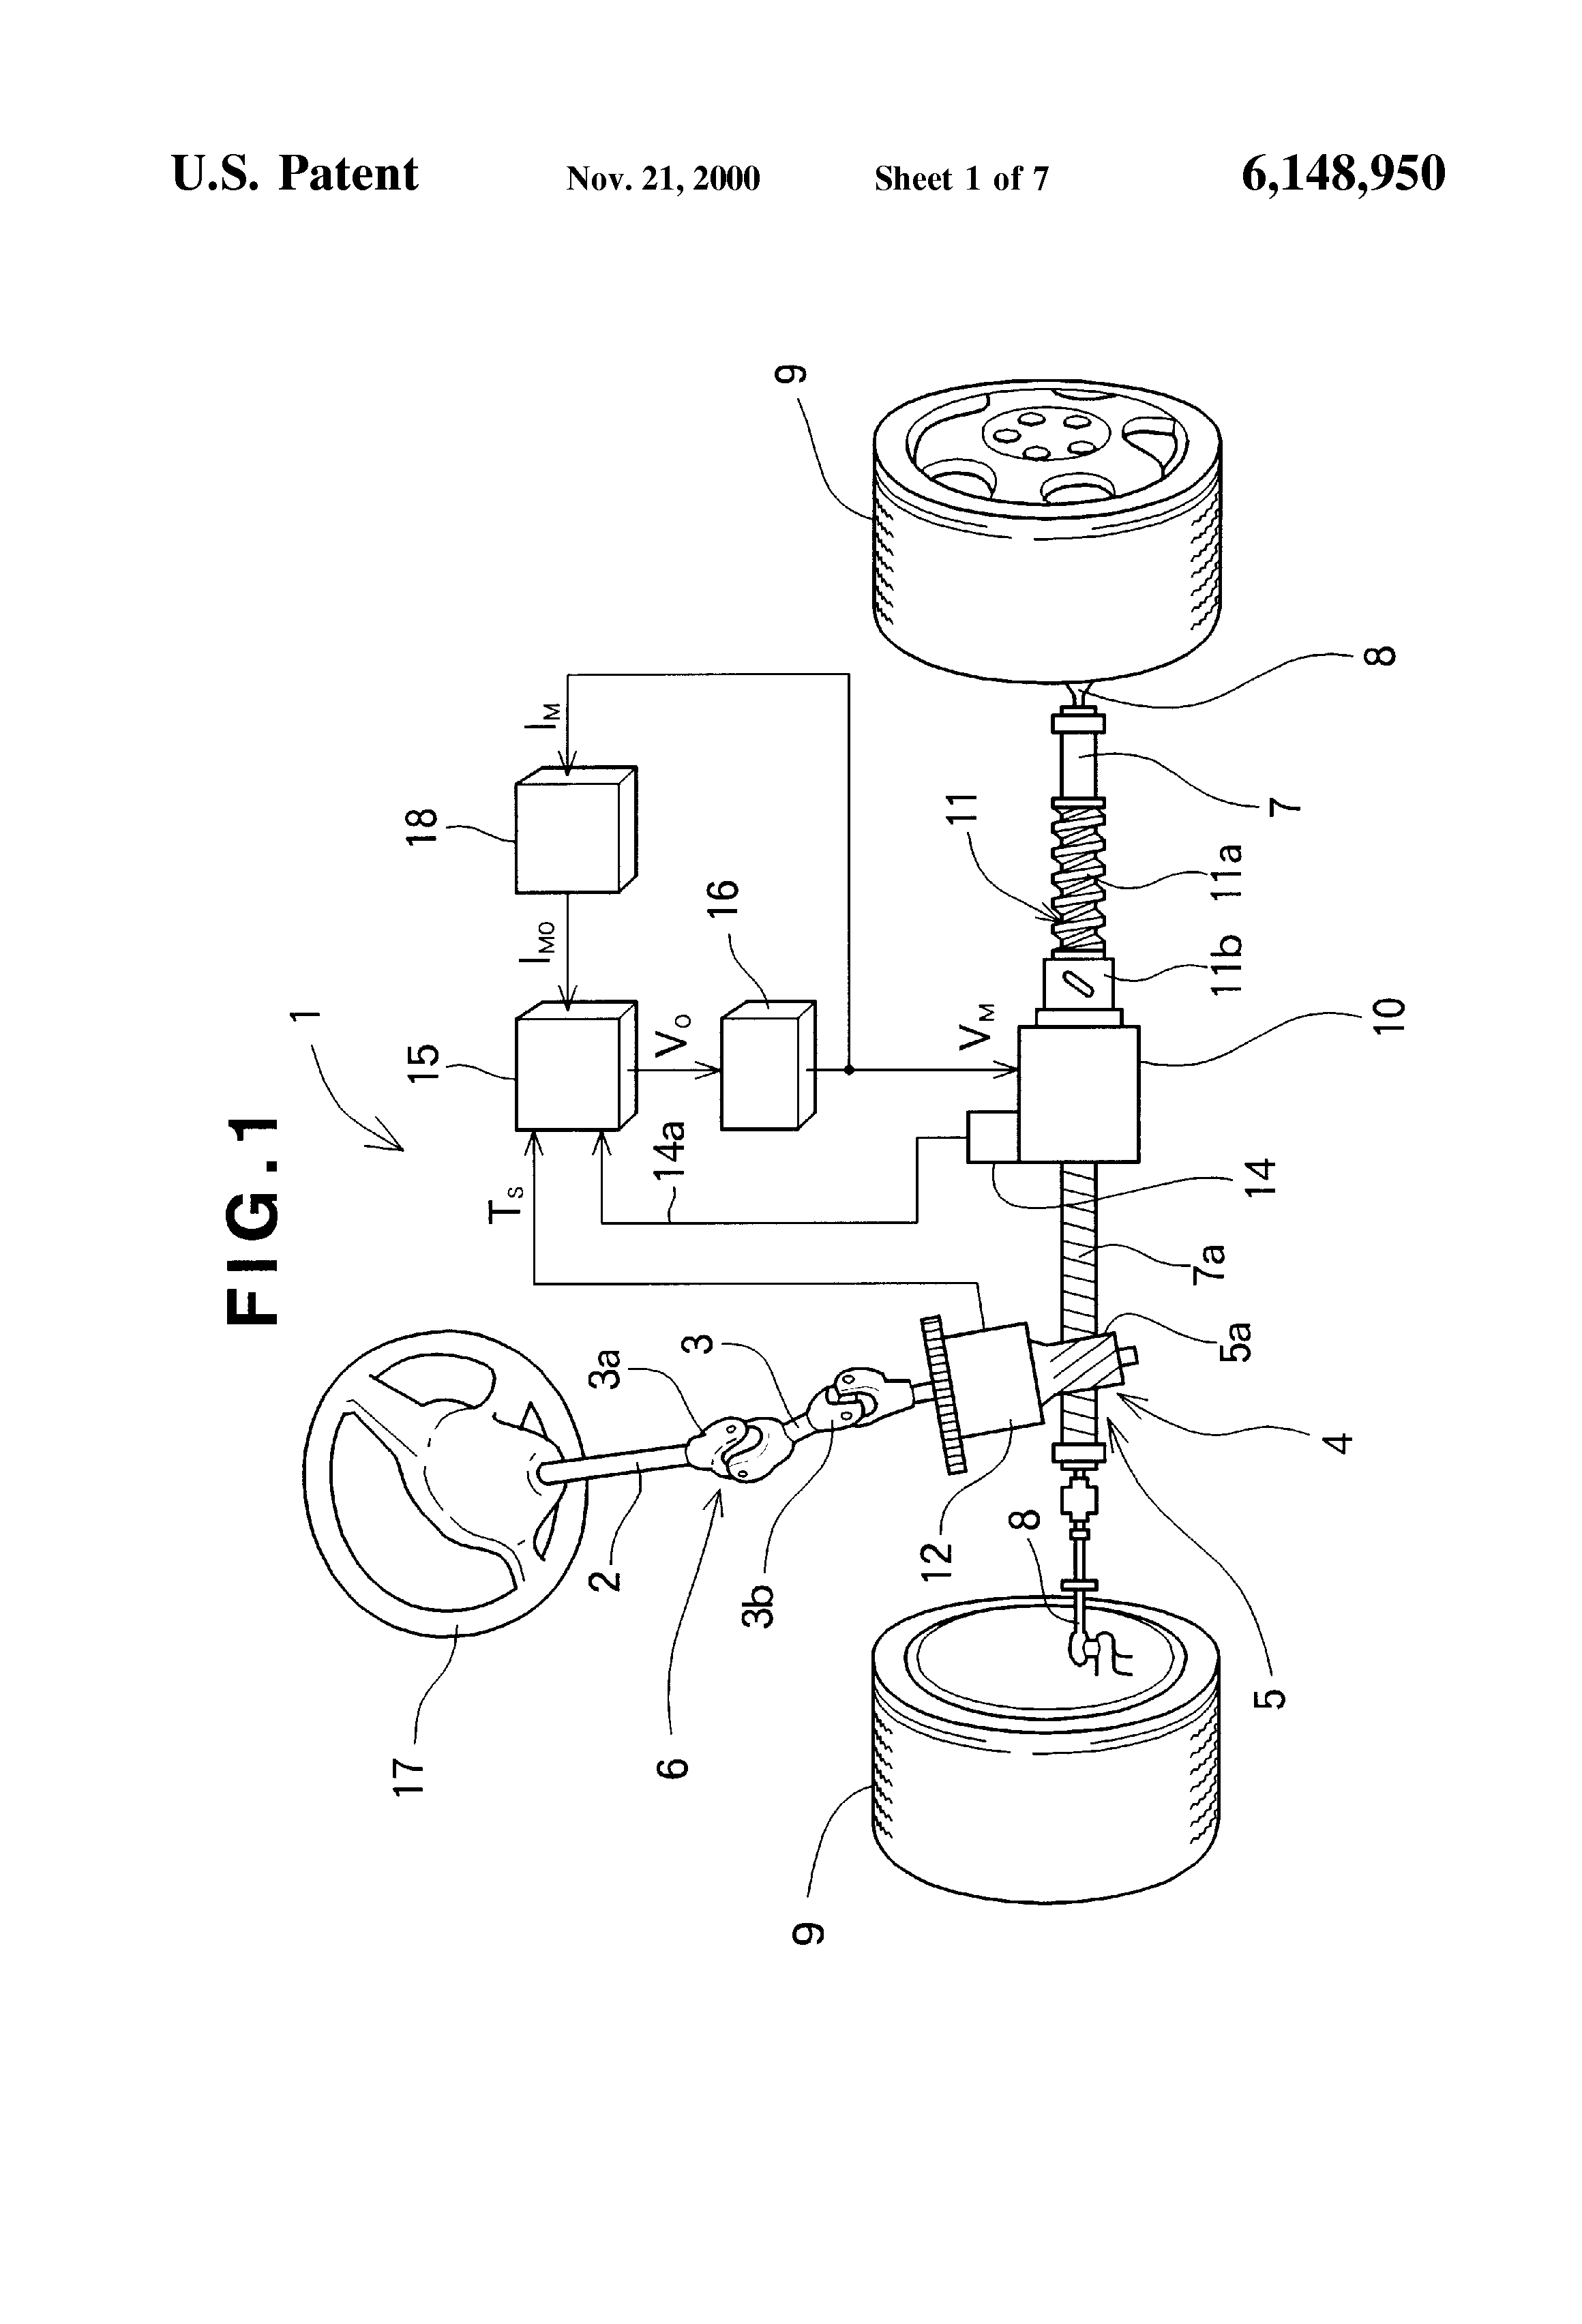 torque detection in an electric power steering device